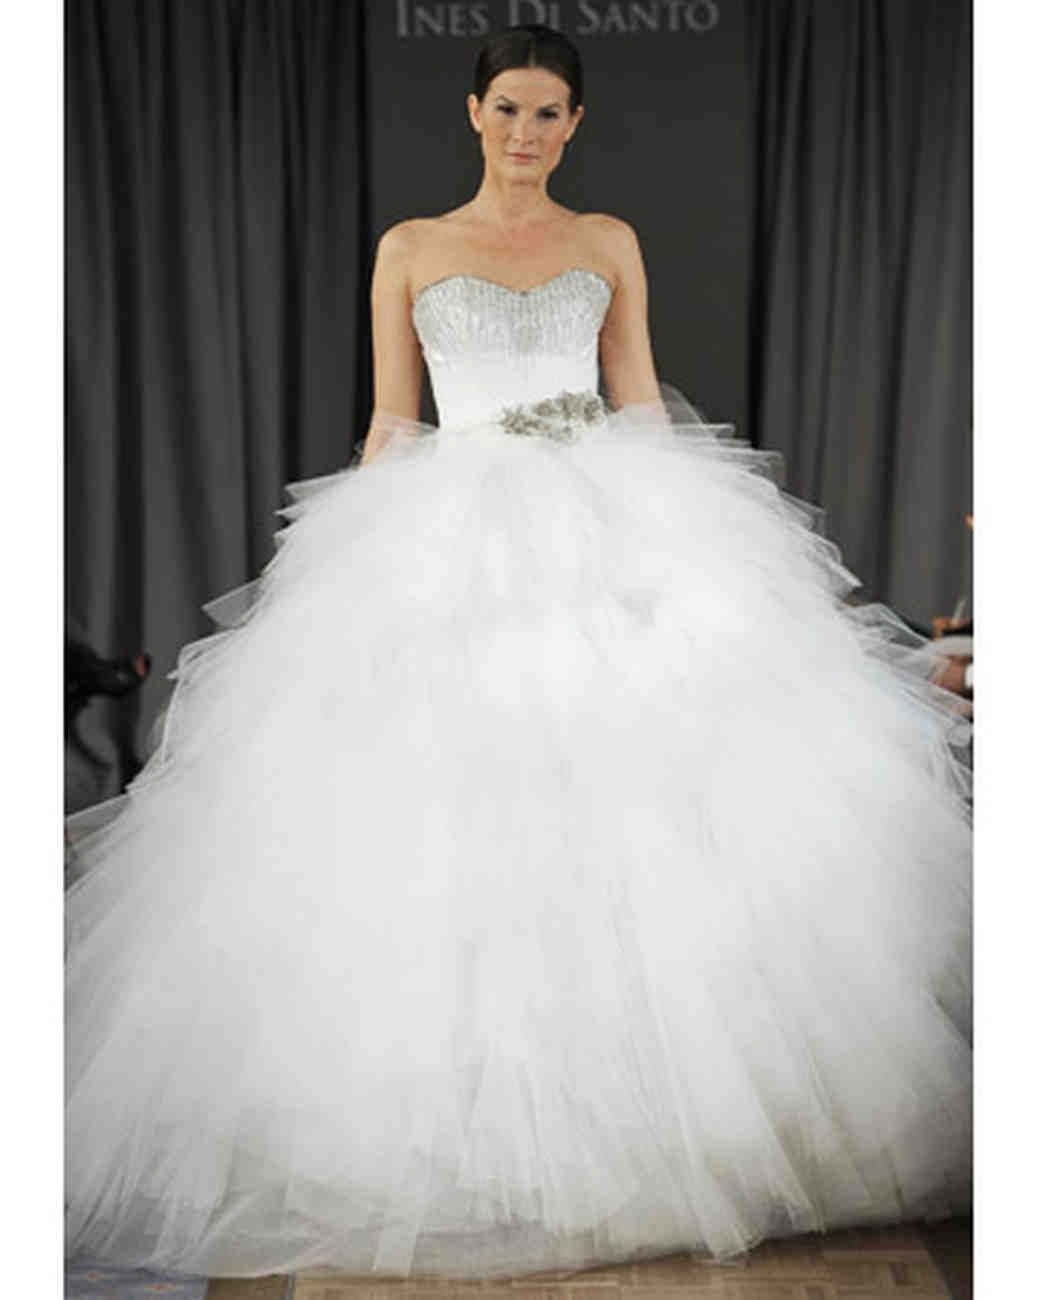 Tulle Wedding Ball Gowns: Tulle Princess Ball Gowns From Spring 2012 Bridal Fashion